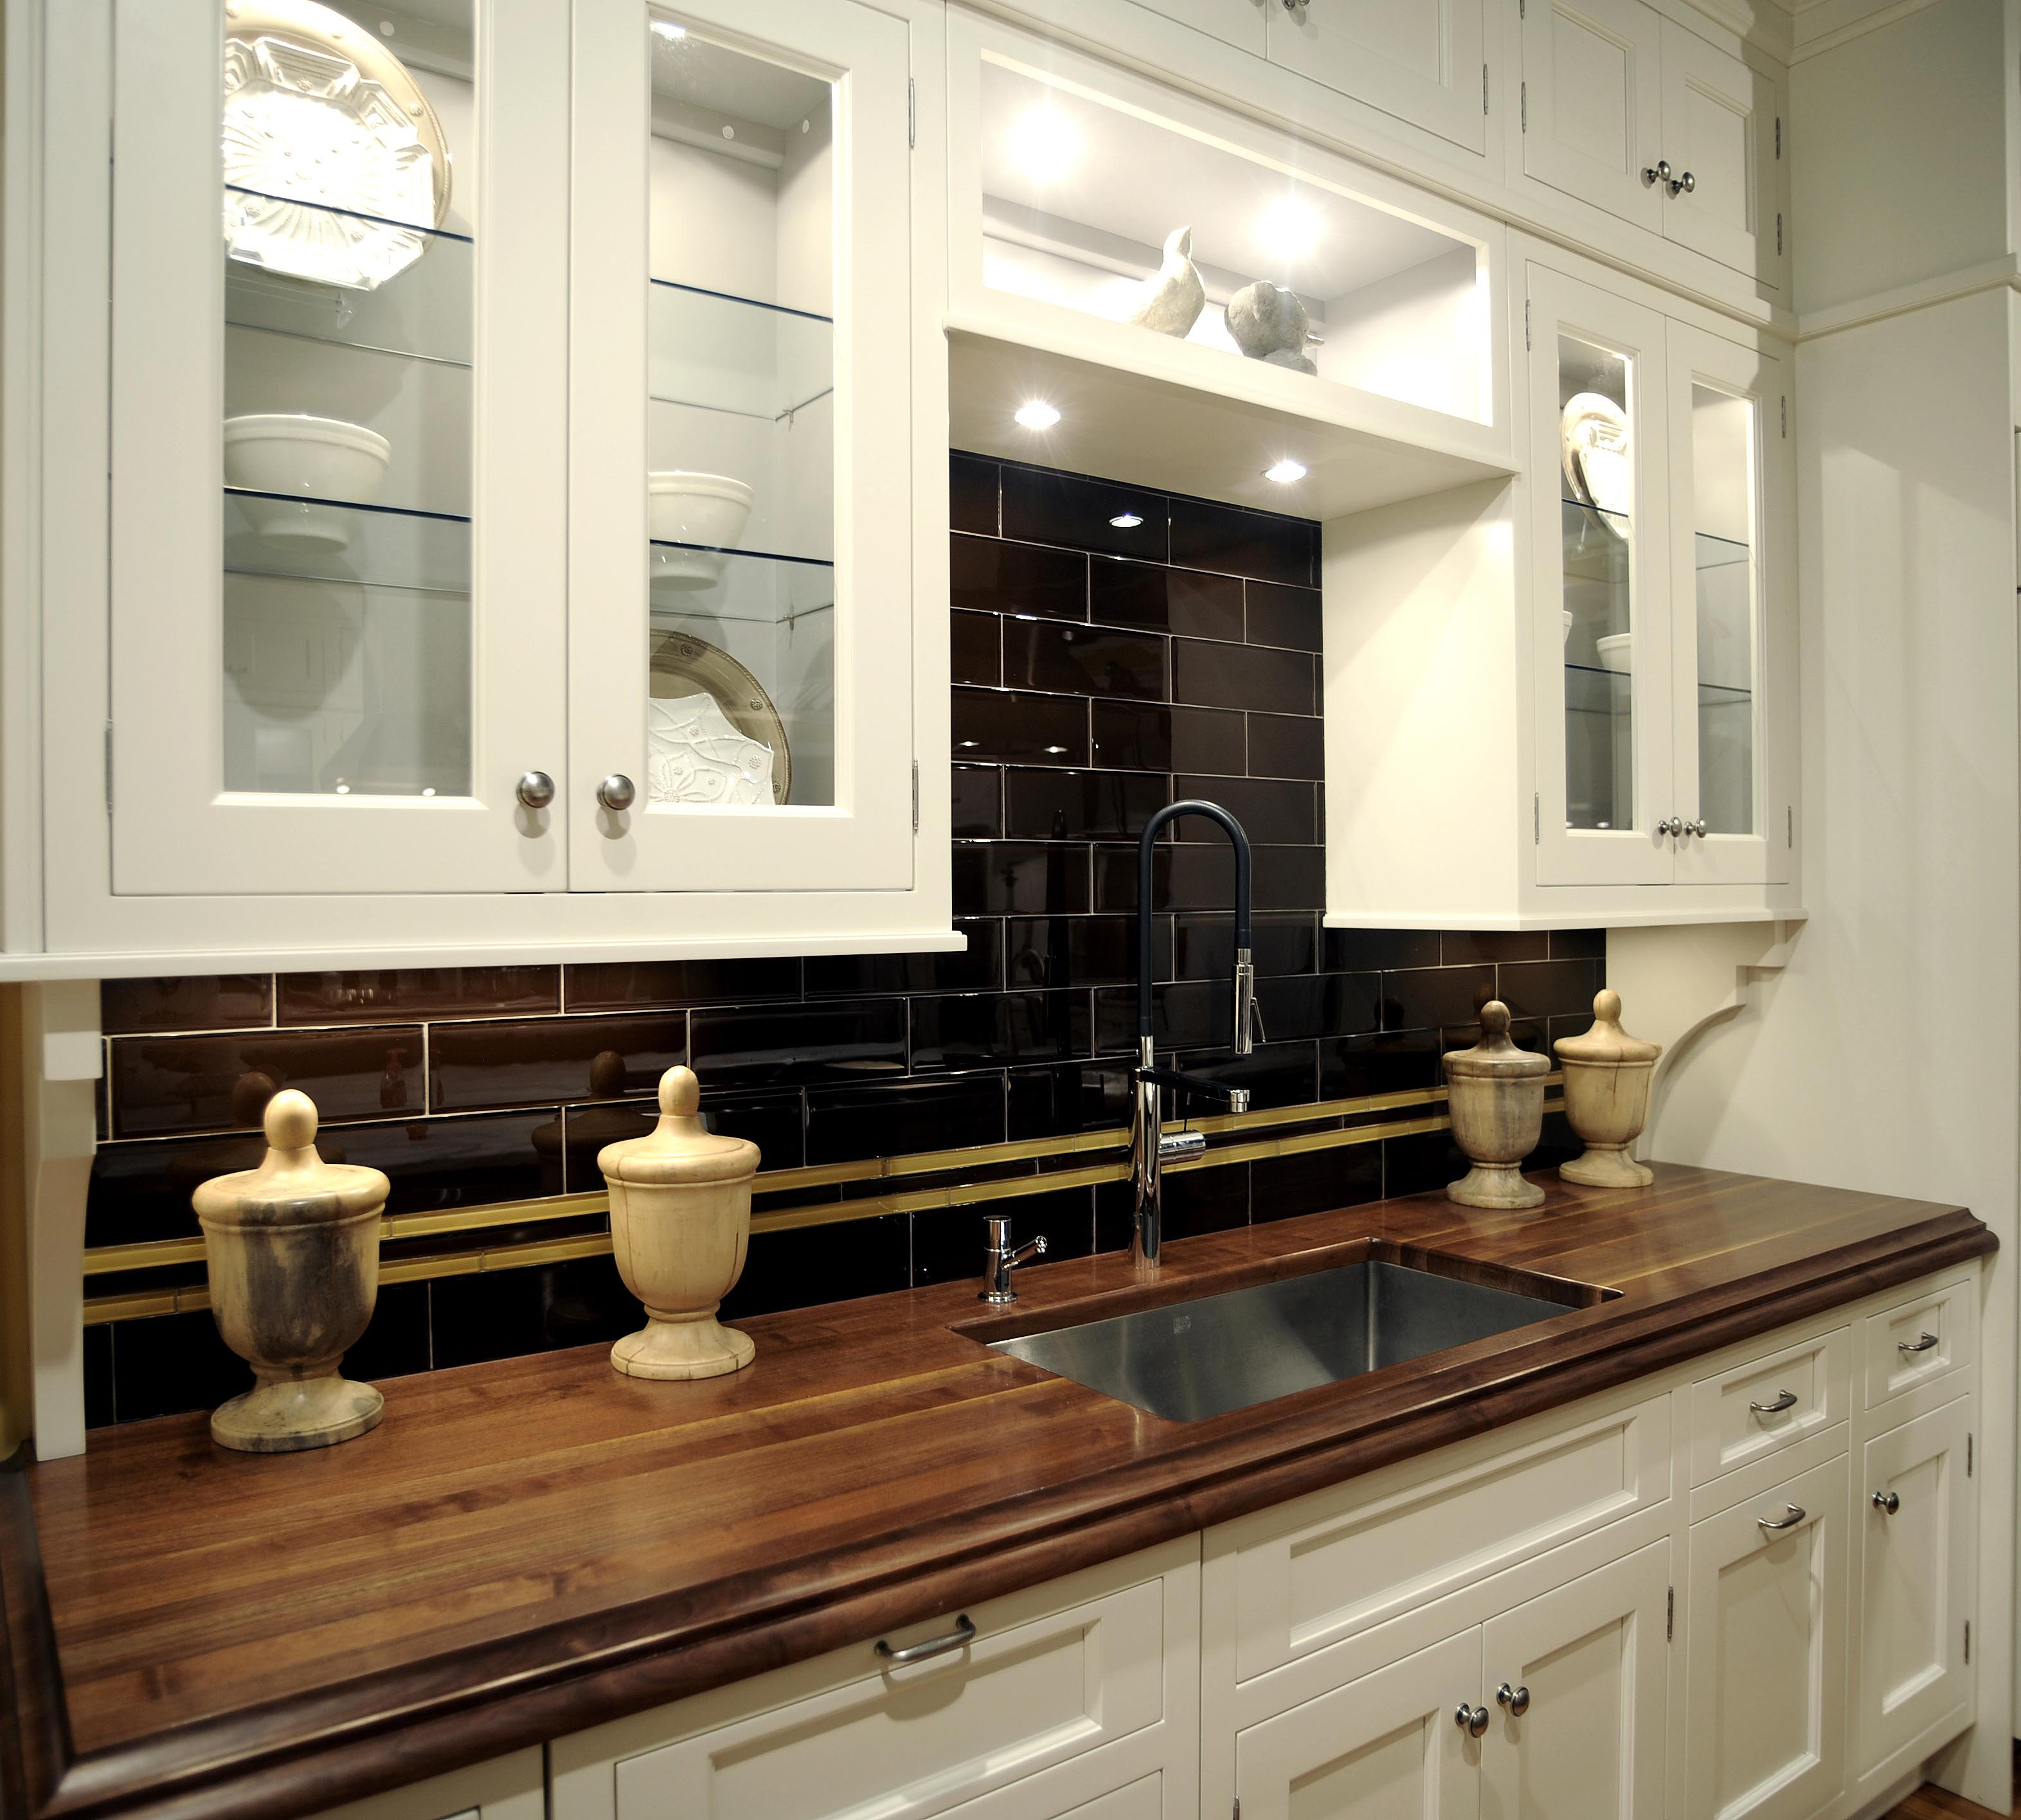 Best Countertops For Kitchen: 20 Ideas For Installing A Wooden Countertop At Your Home